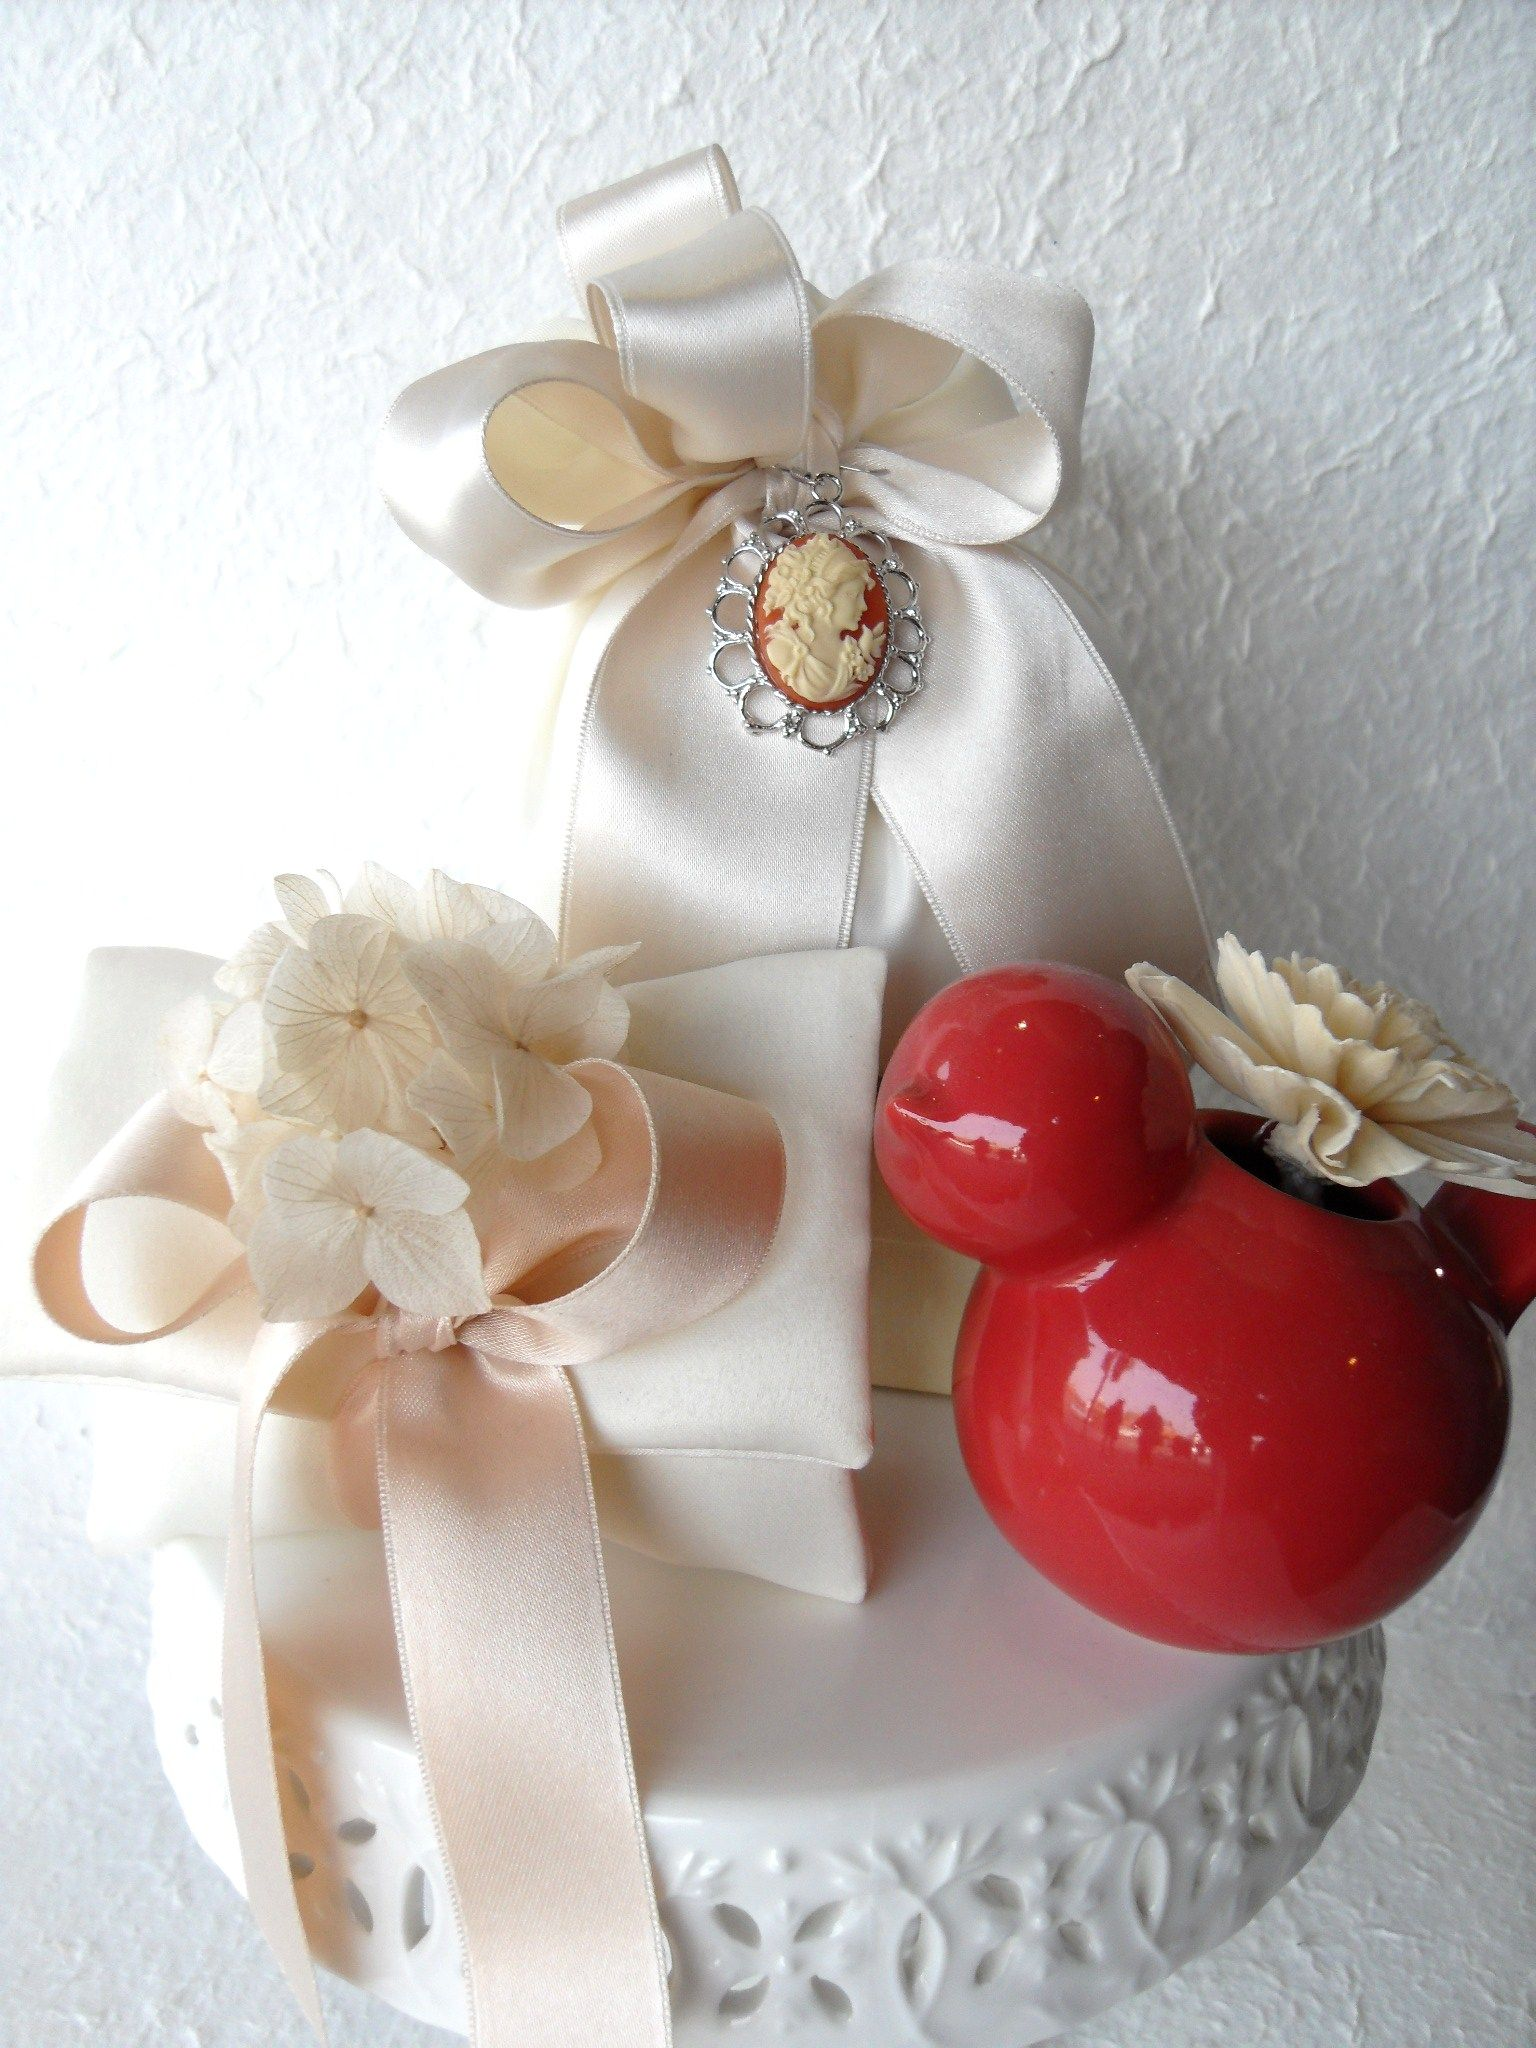 Cammeo Gift Wrapping Gifts Decor